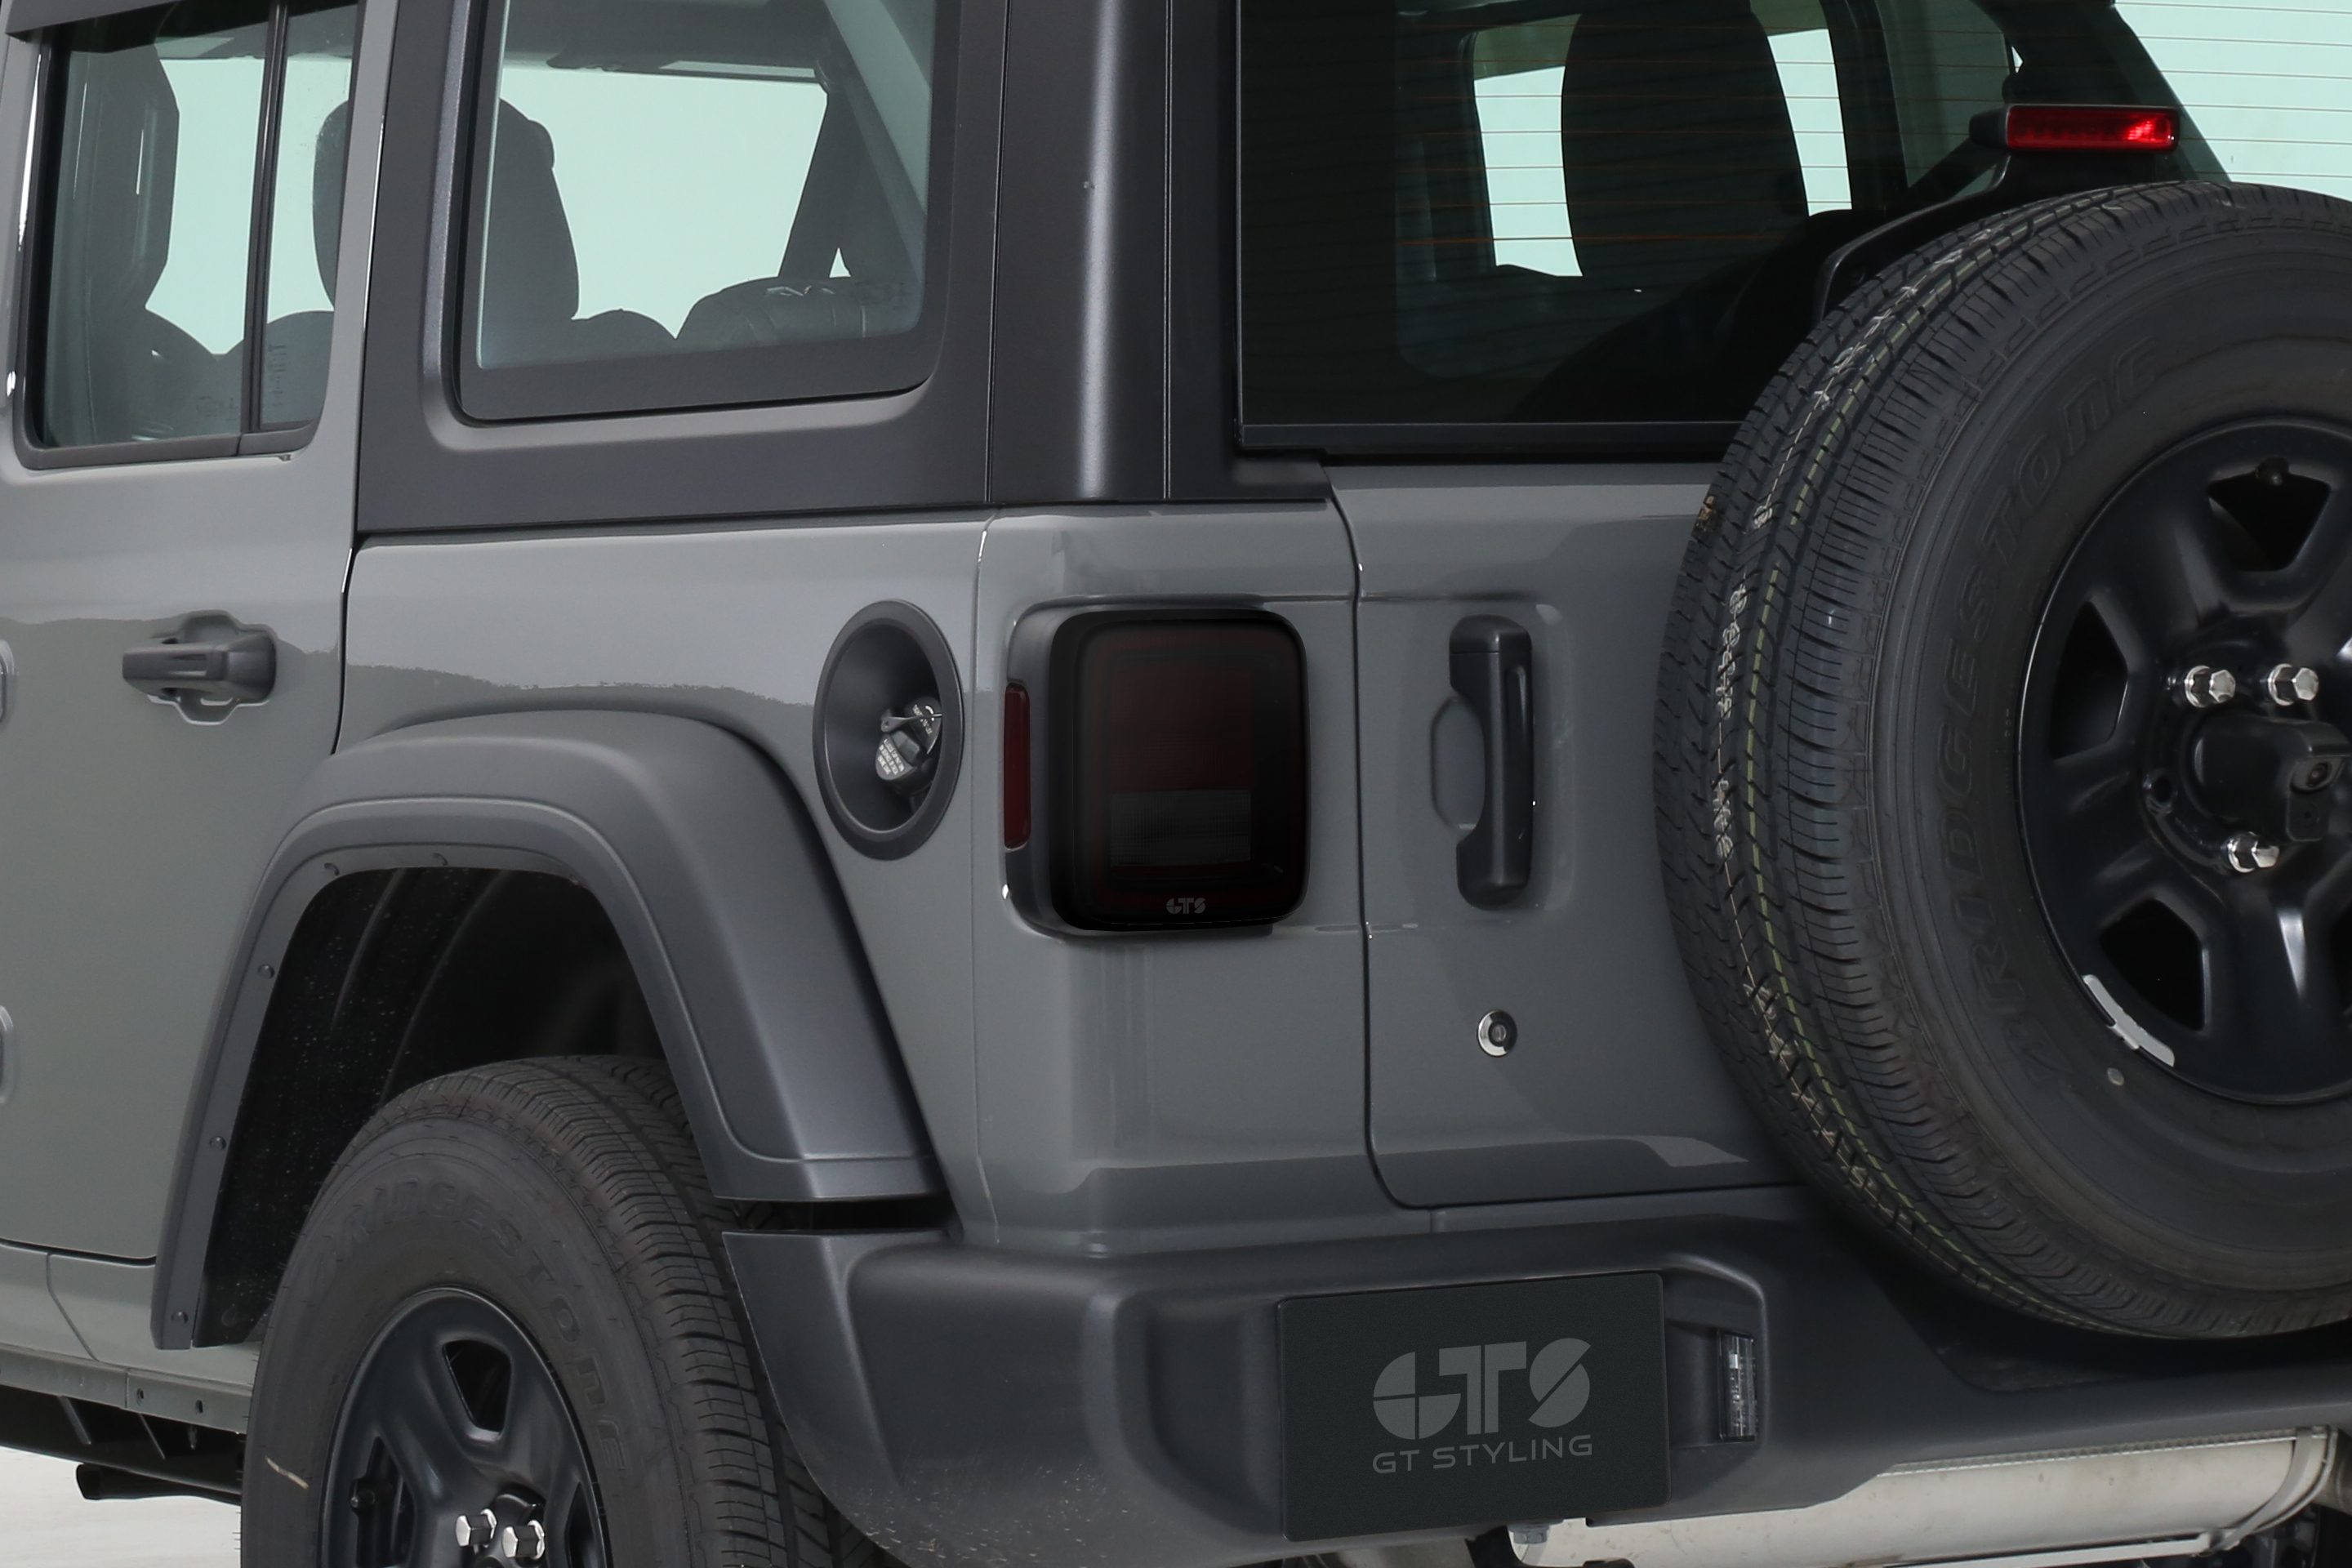 2018-2019 JEEP WRANGLER JL/JLU ALLL TAILLIGHT COVER, 2PC, CLEAR (DOES NOT FIT FACTORY LED EQUIPPED VEHICLES)